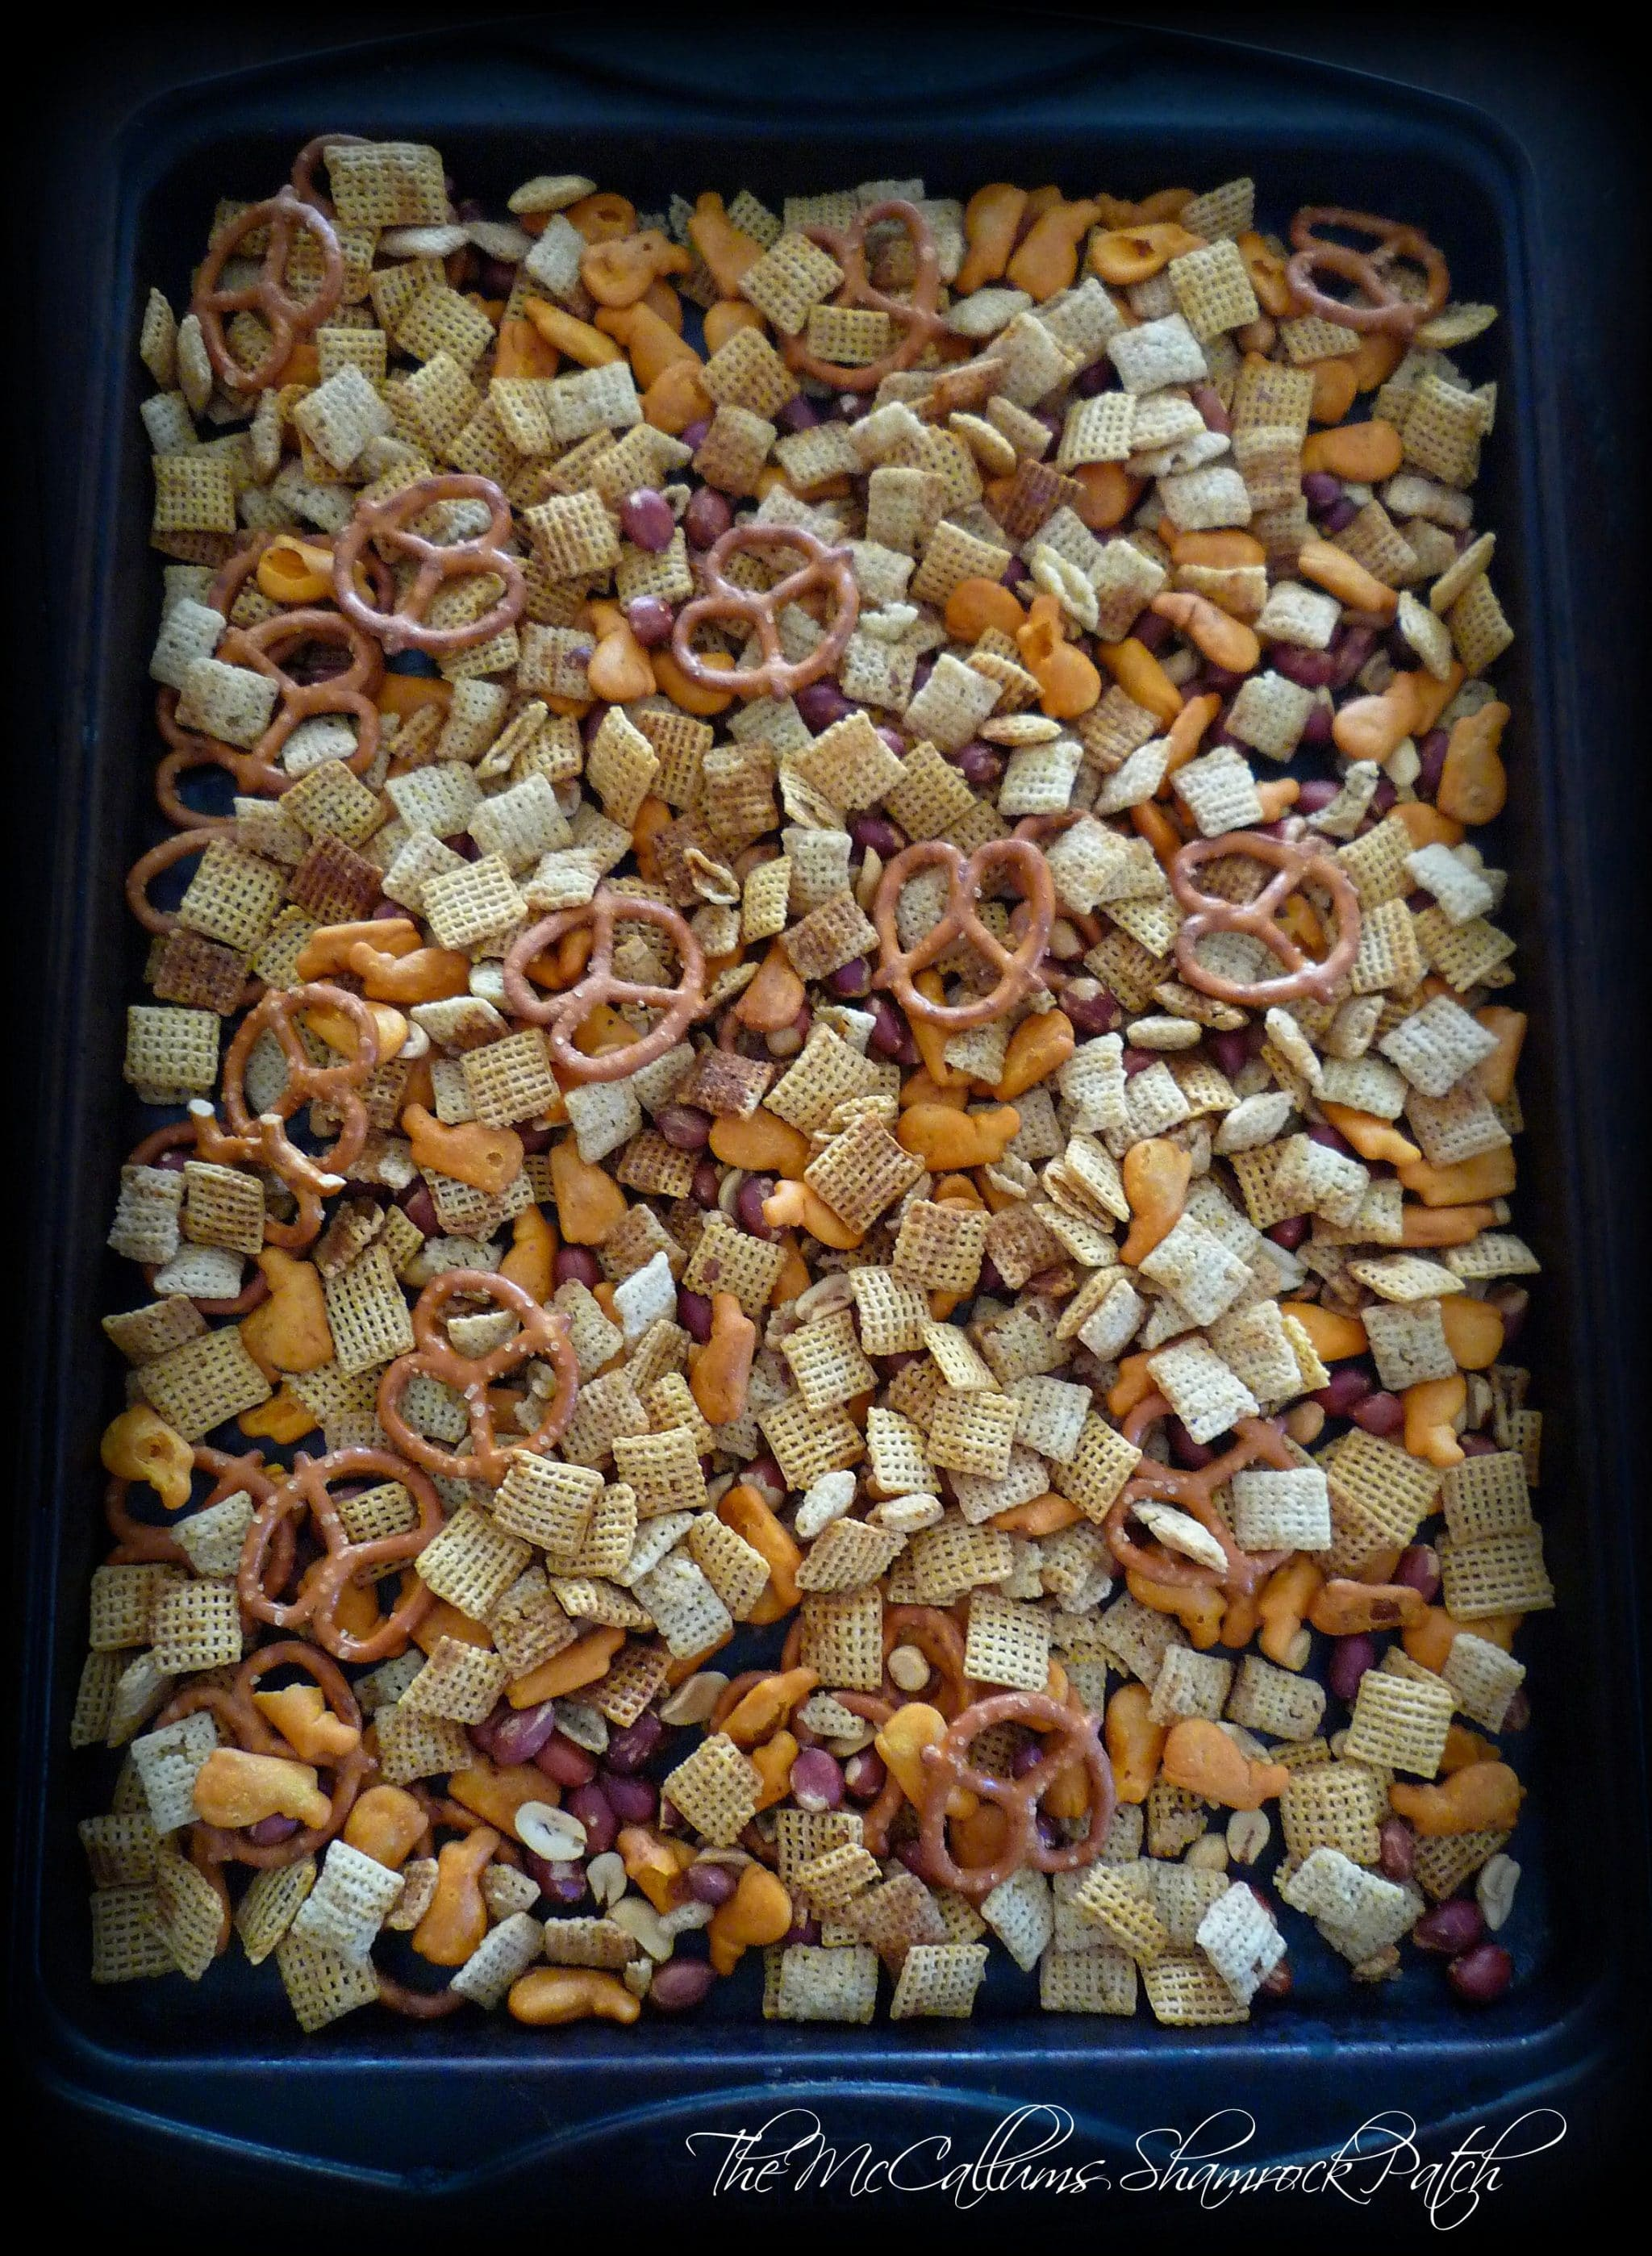 Baked Cajun-Style Party Chex Mix